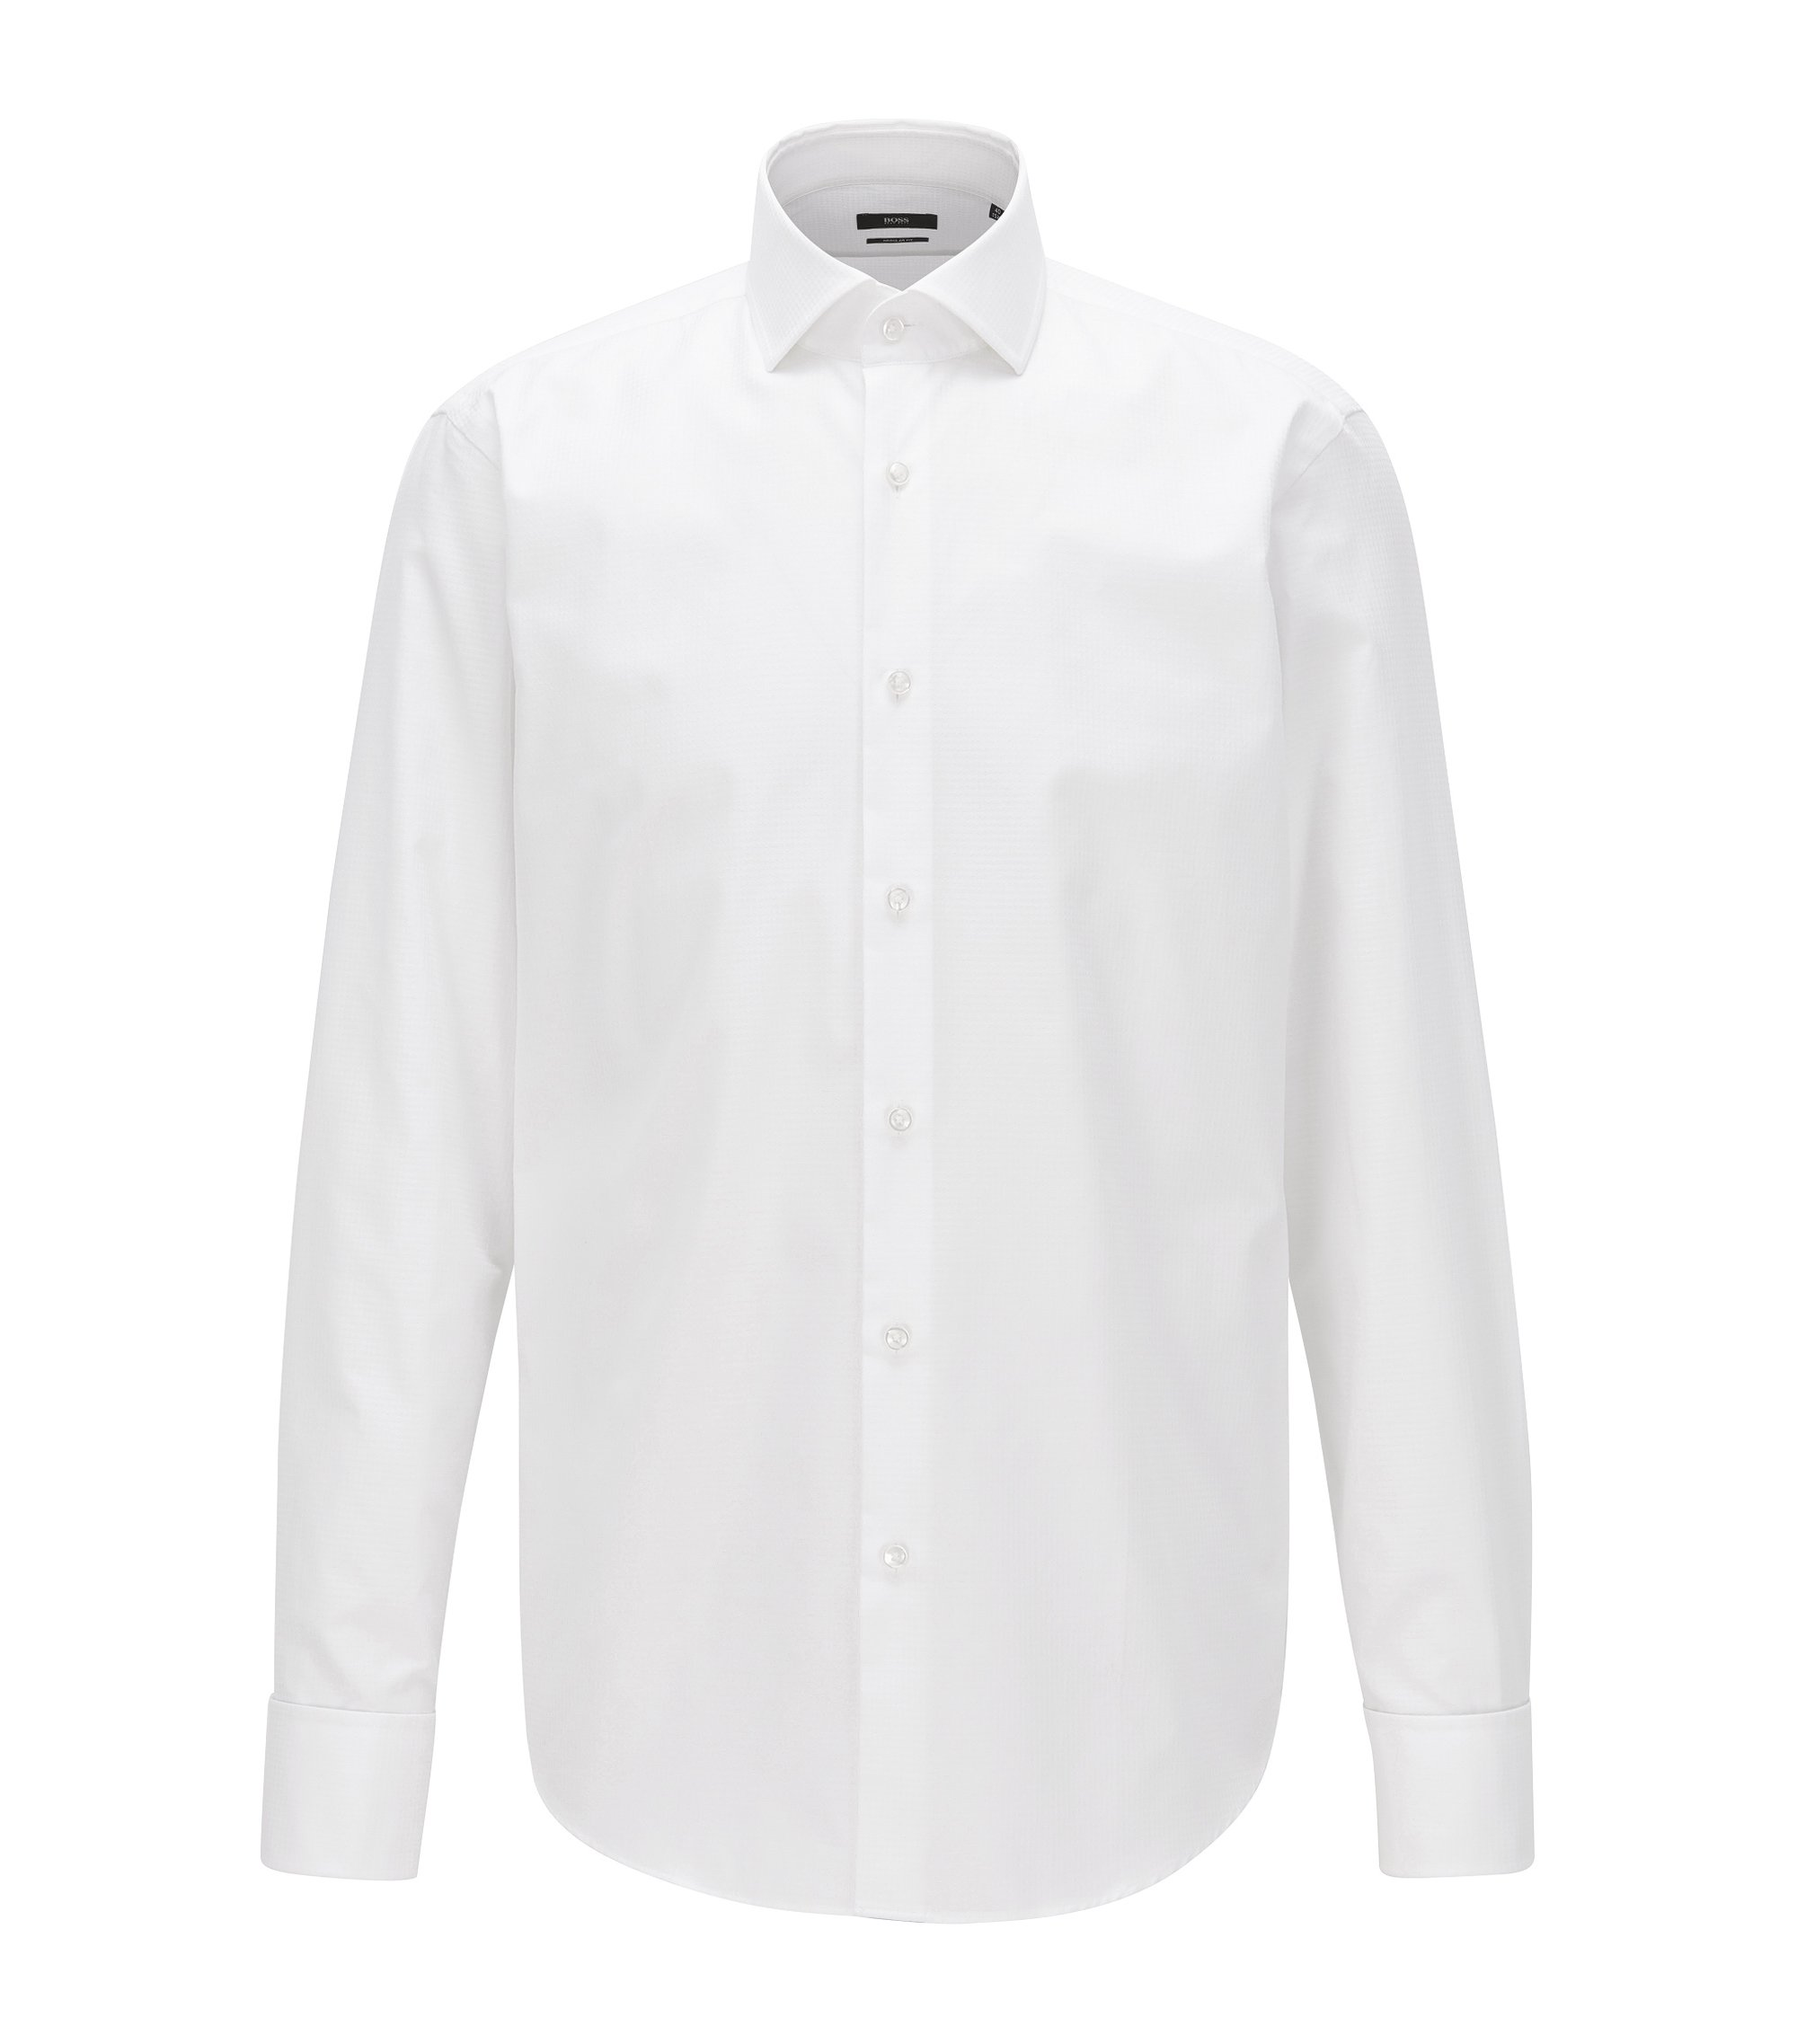 Regular-fit double-cuff shirt in Argyle cotton, White